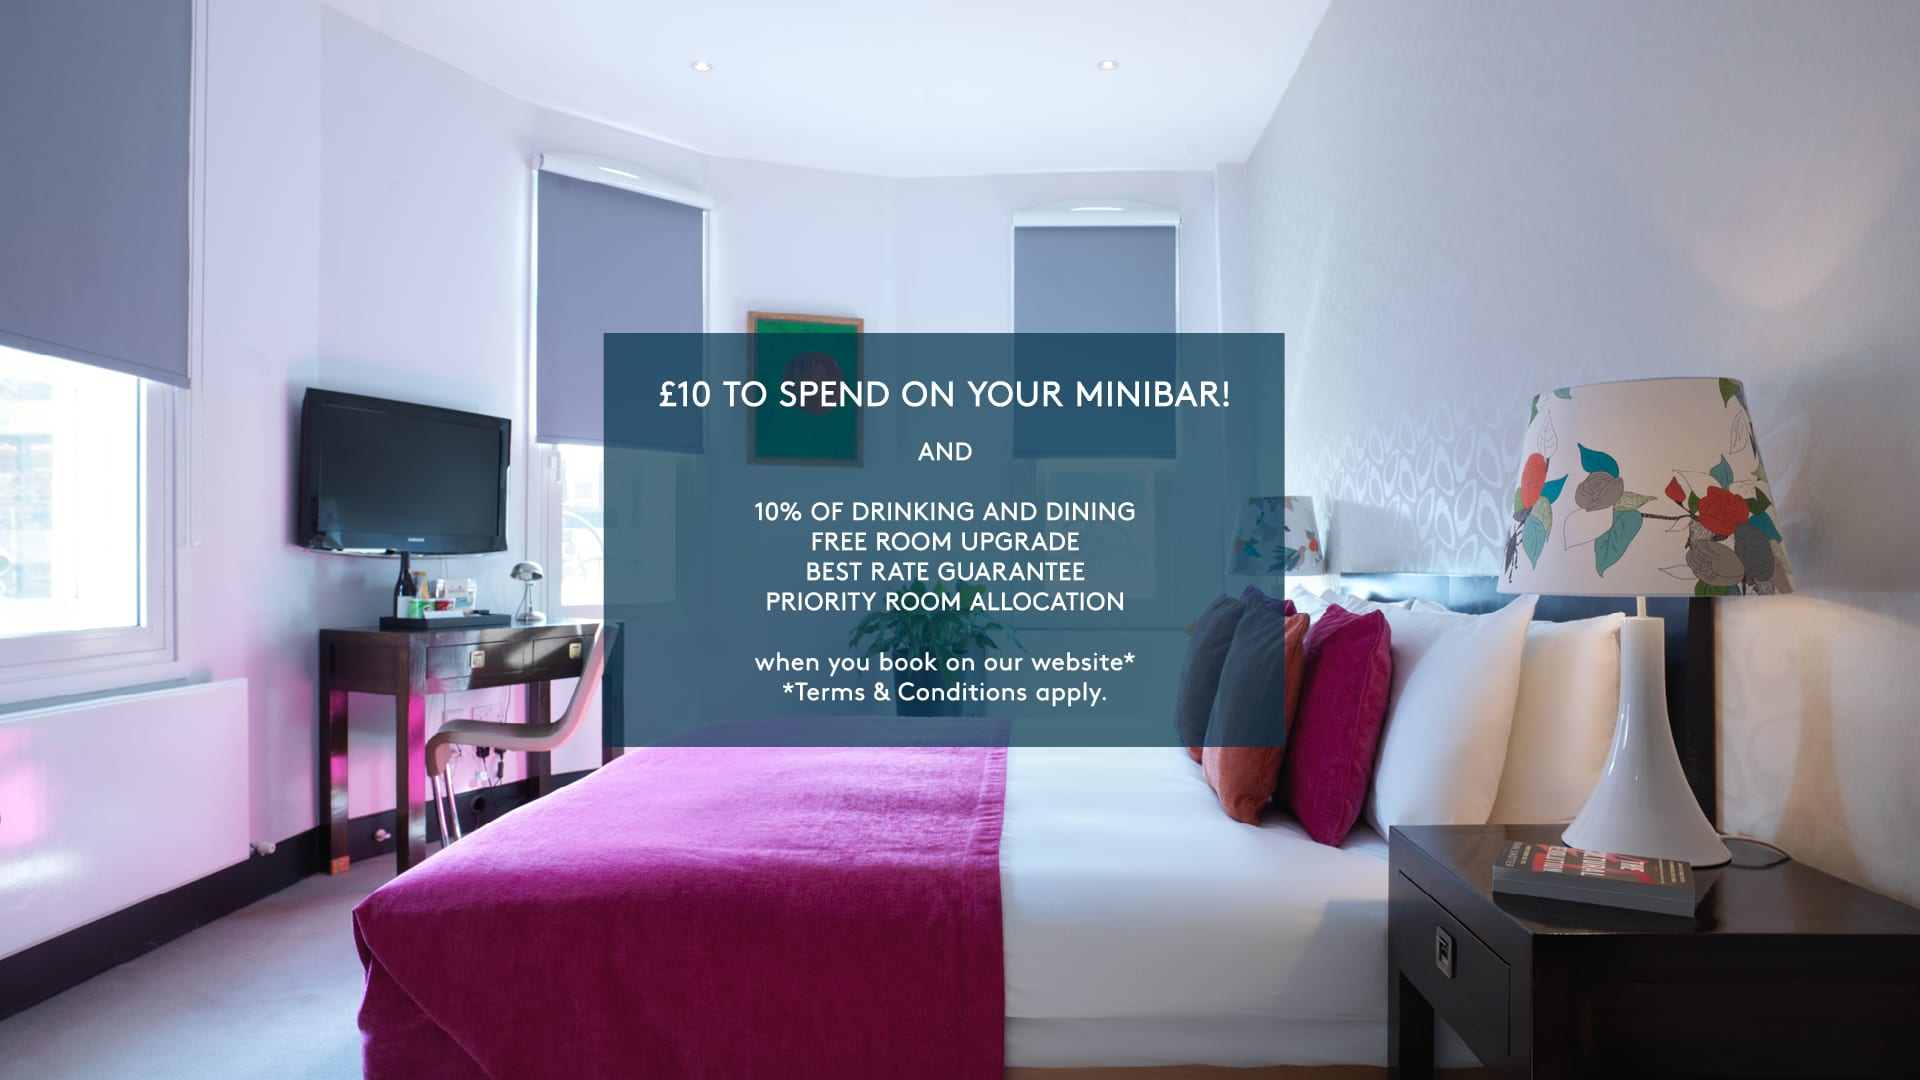 Book Direct at My Bloomsbury and get £10 to spend on your minibar and other perks too. Choose one of our boutique hotels in London or Brighton.